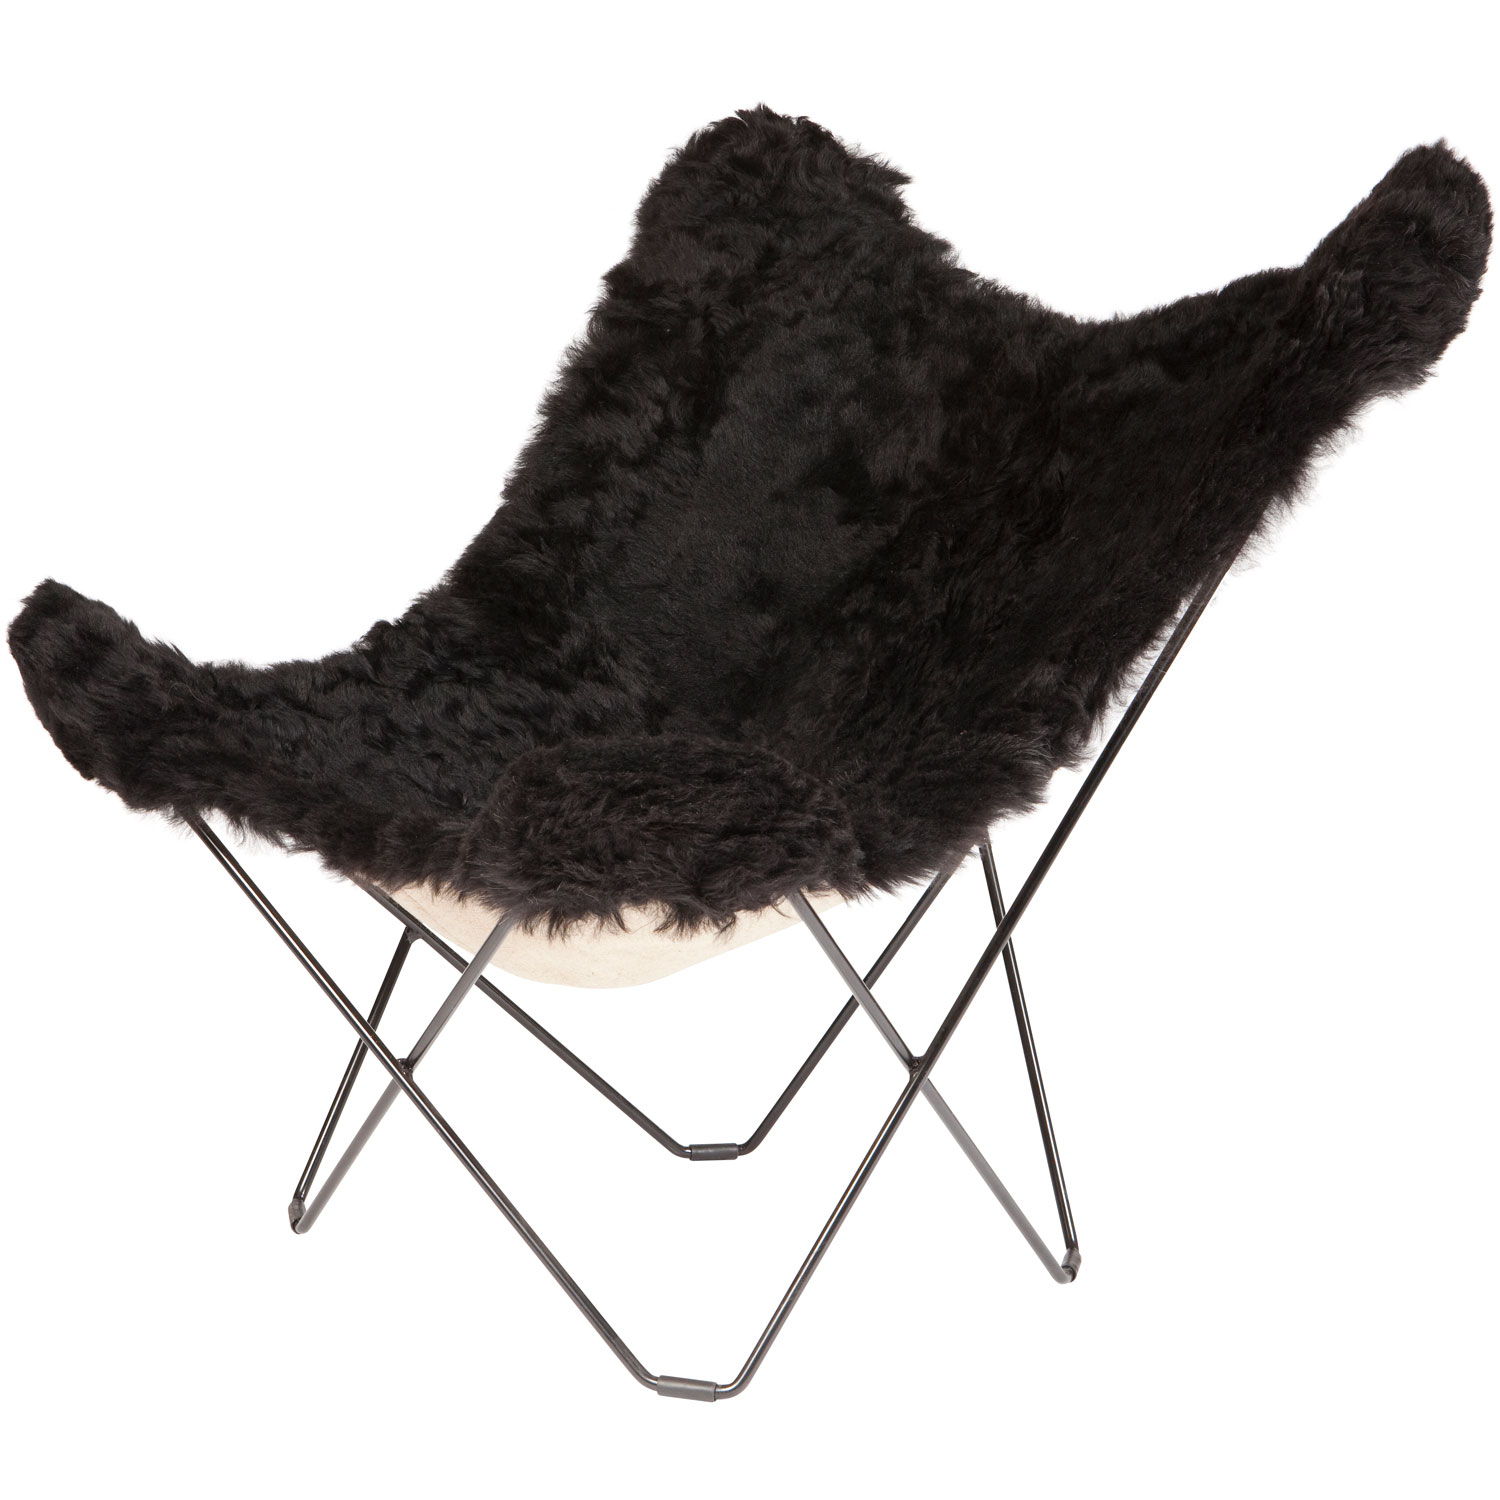 Iceland Mariposa Butterfly Chair, Shorn Black/B...